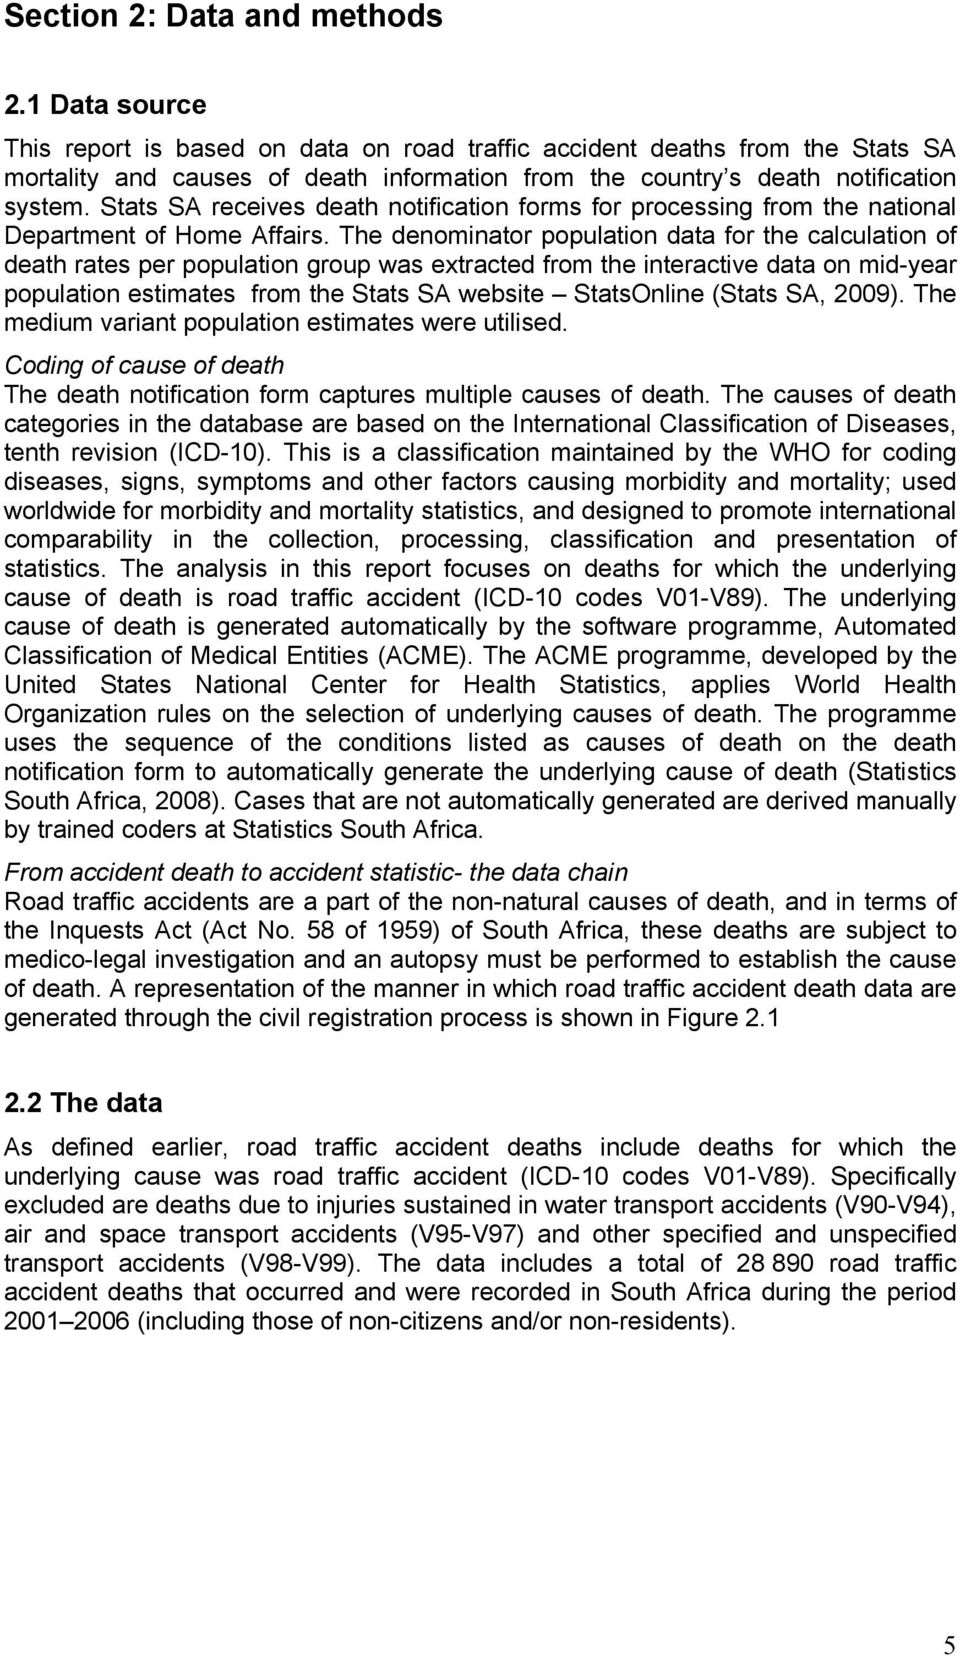 Stats SA receives death notification forms for processing from the national Department of Home Affairs.